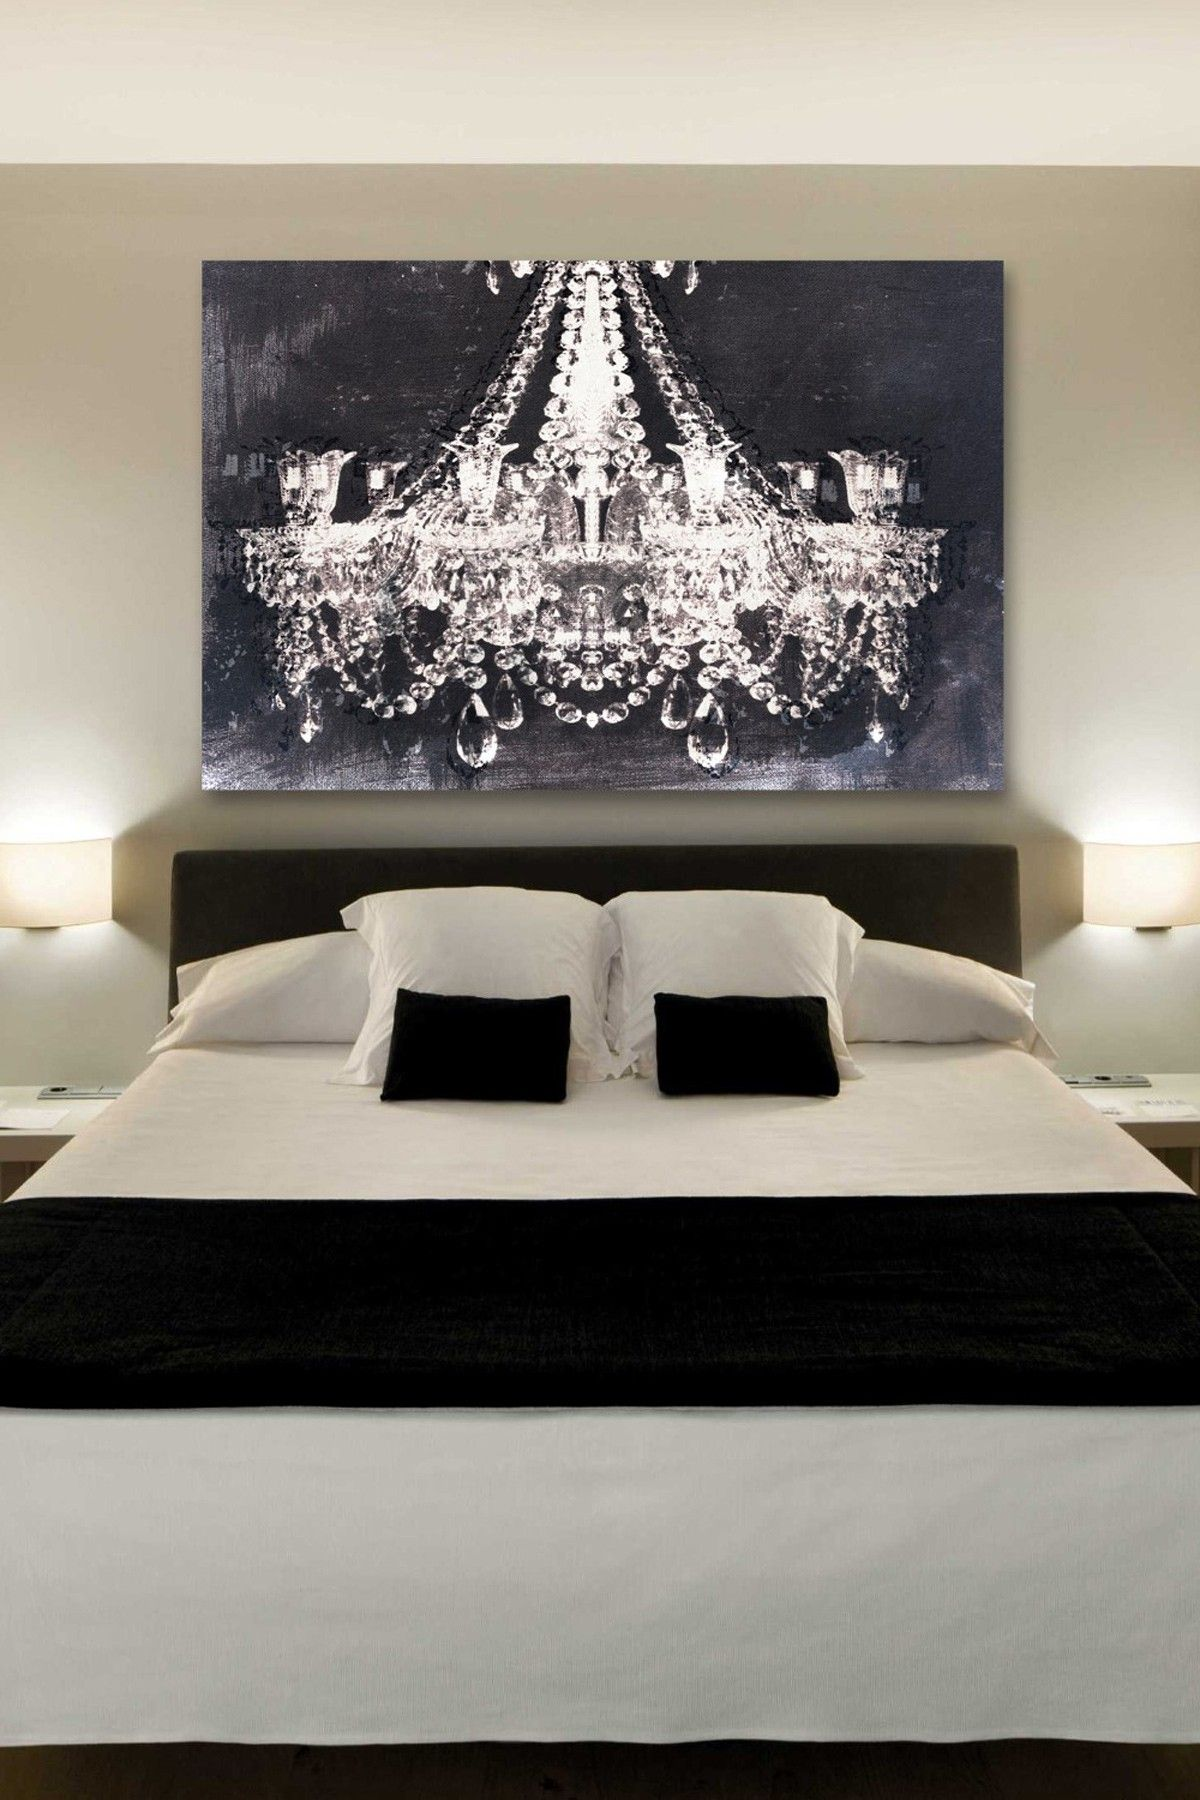 The chandelier art gives such a romantic touch to this bedroom